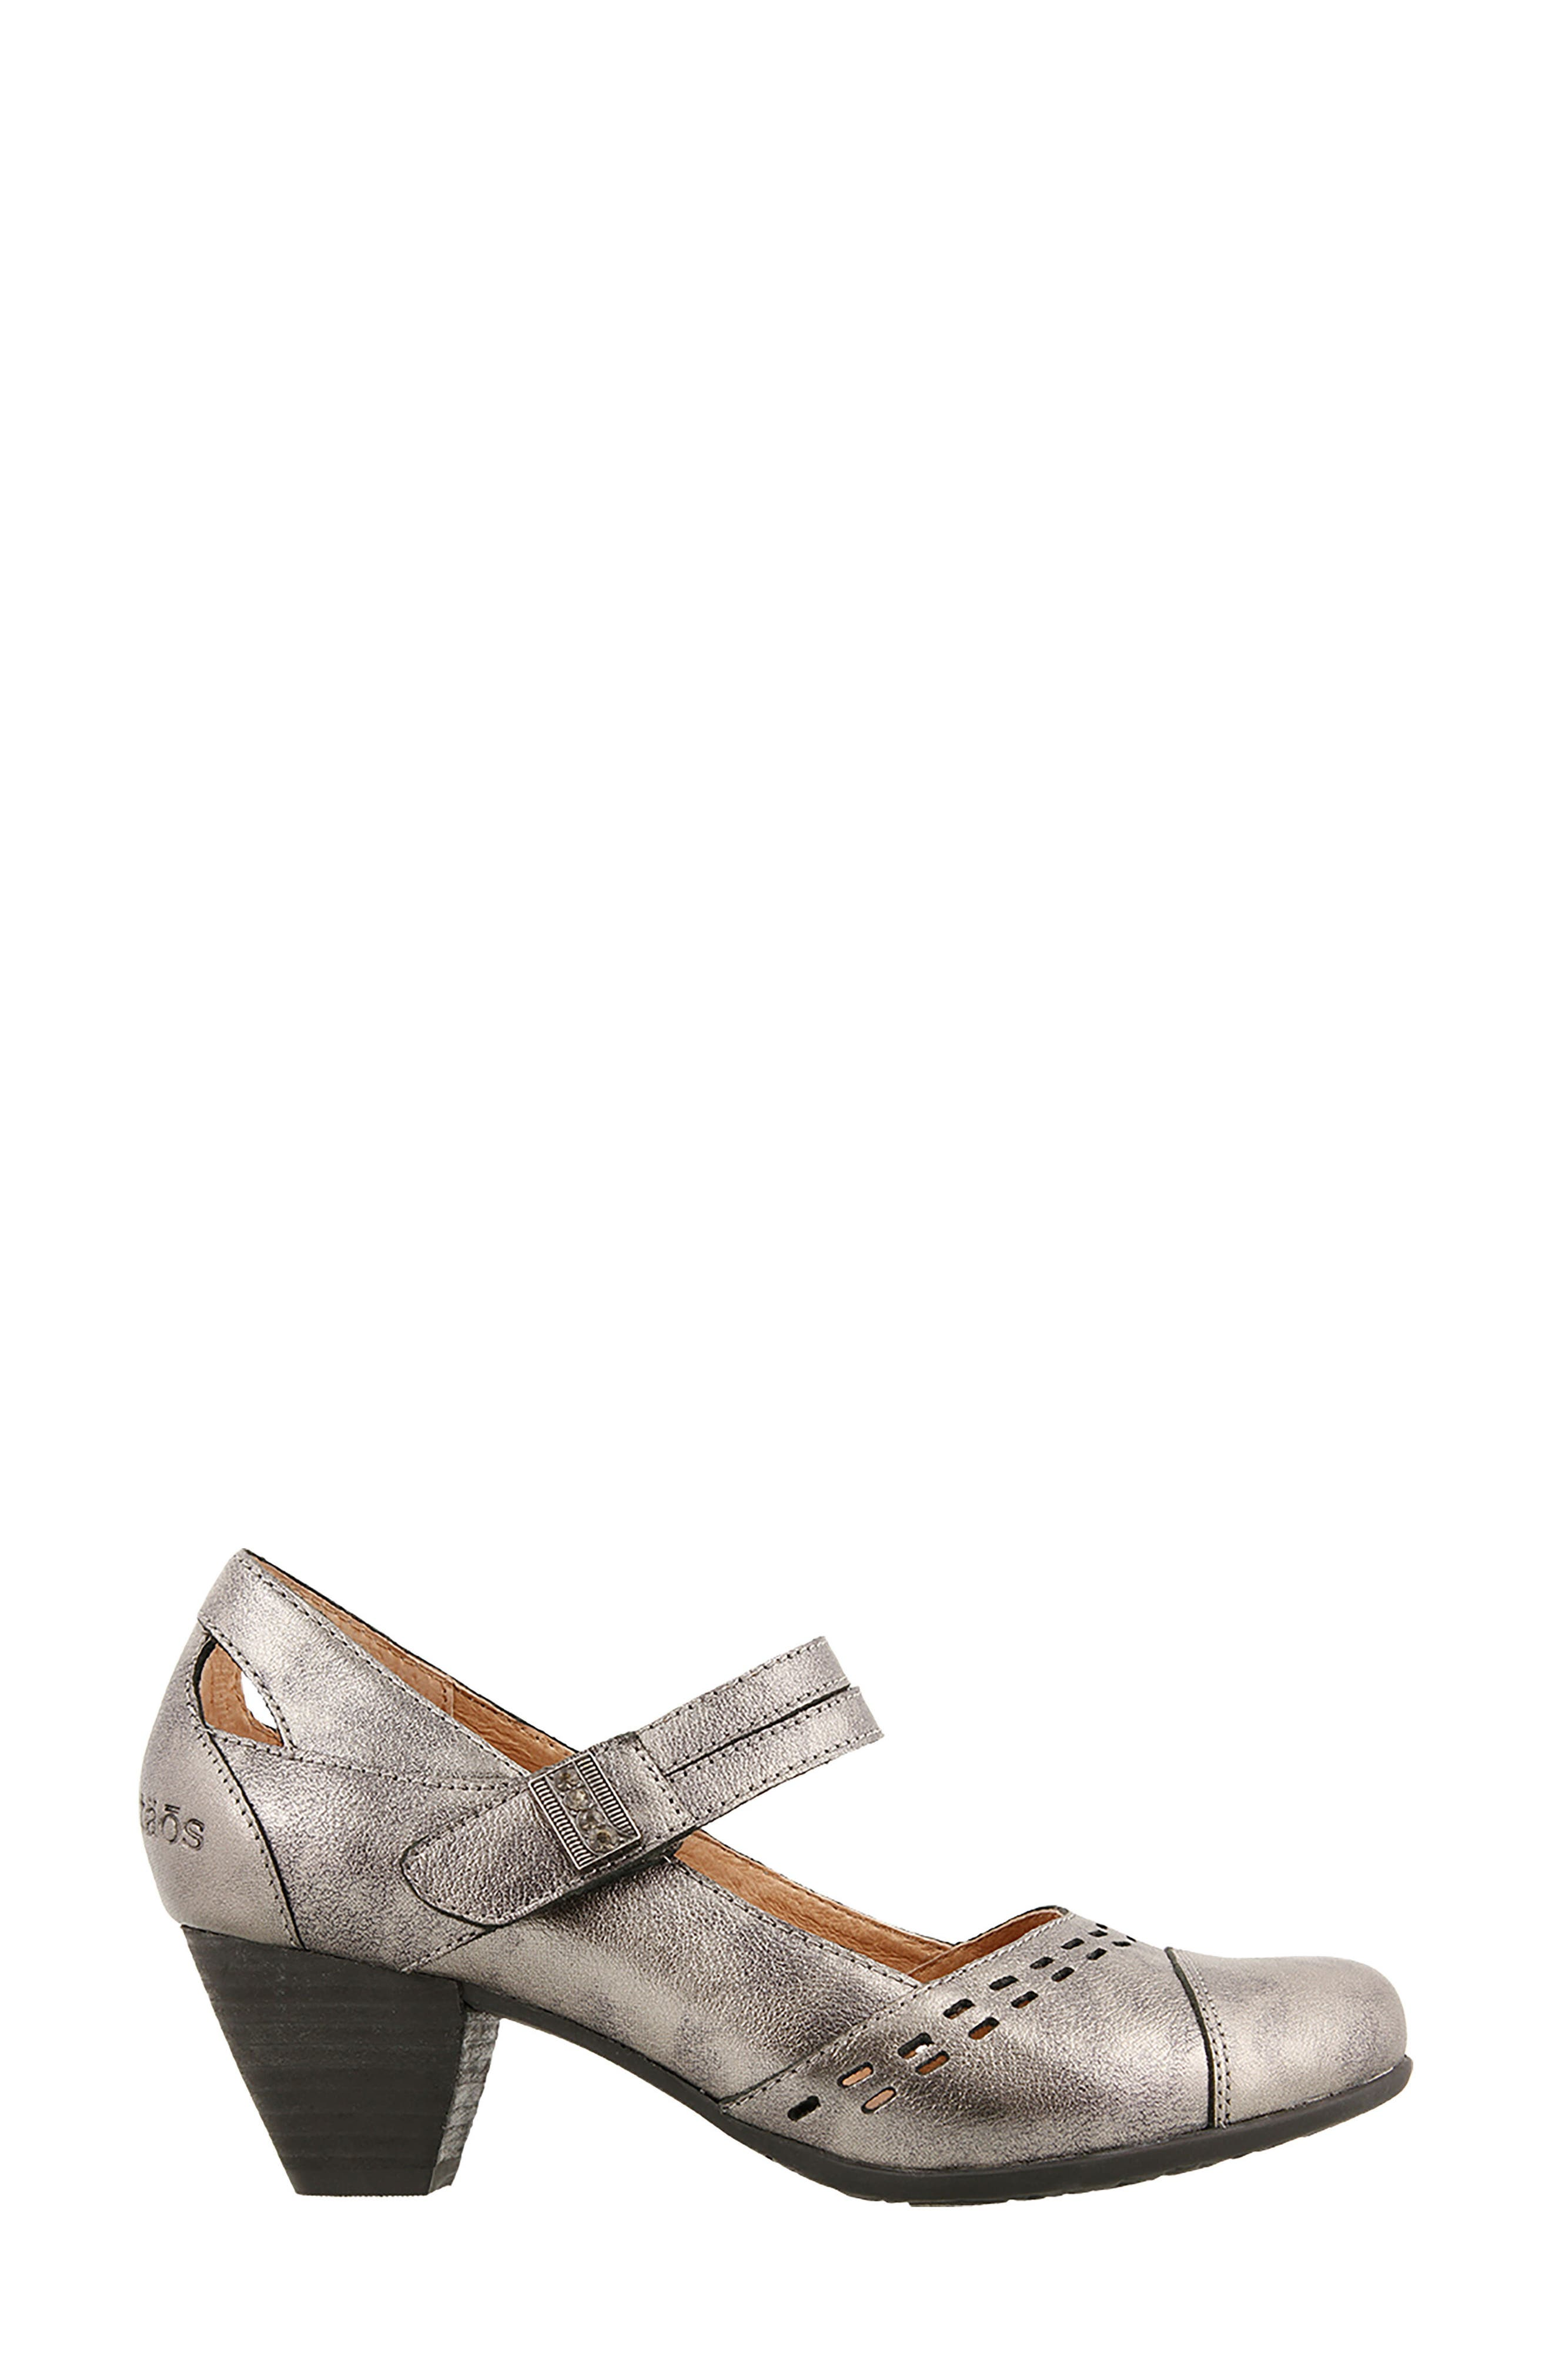 Stunner Laser Cutout Mary Jane Pump,                             Alternate thumbnail 3, color,                             Pewter Leather